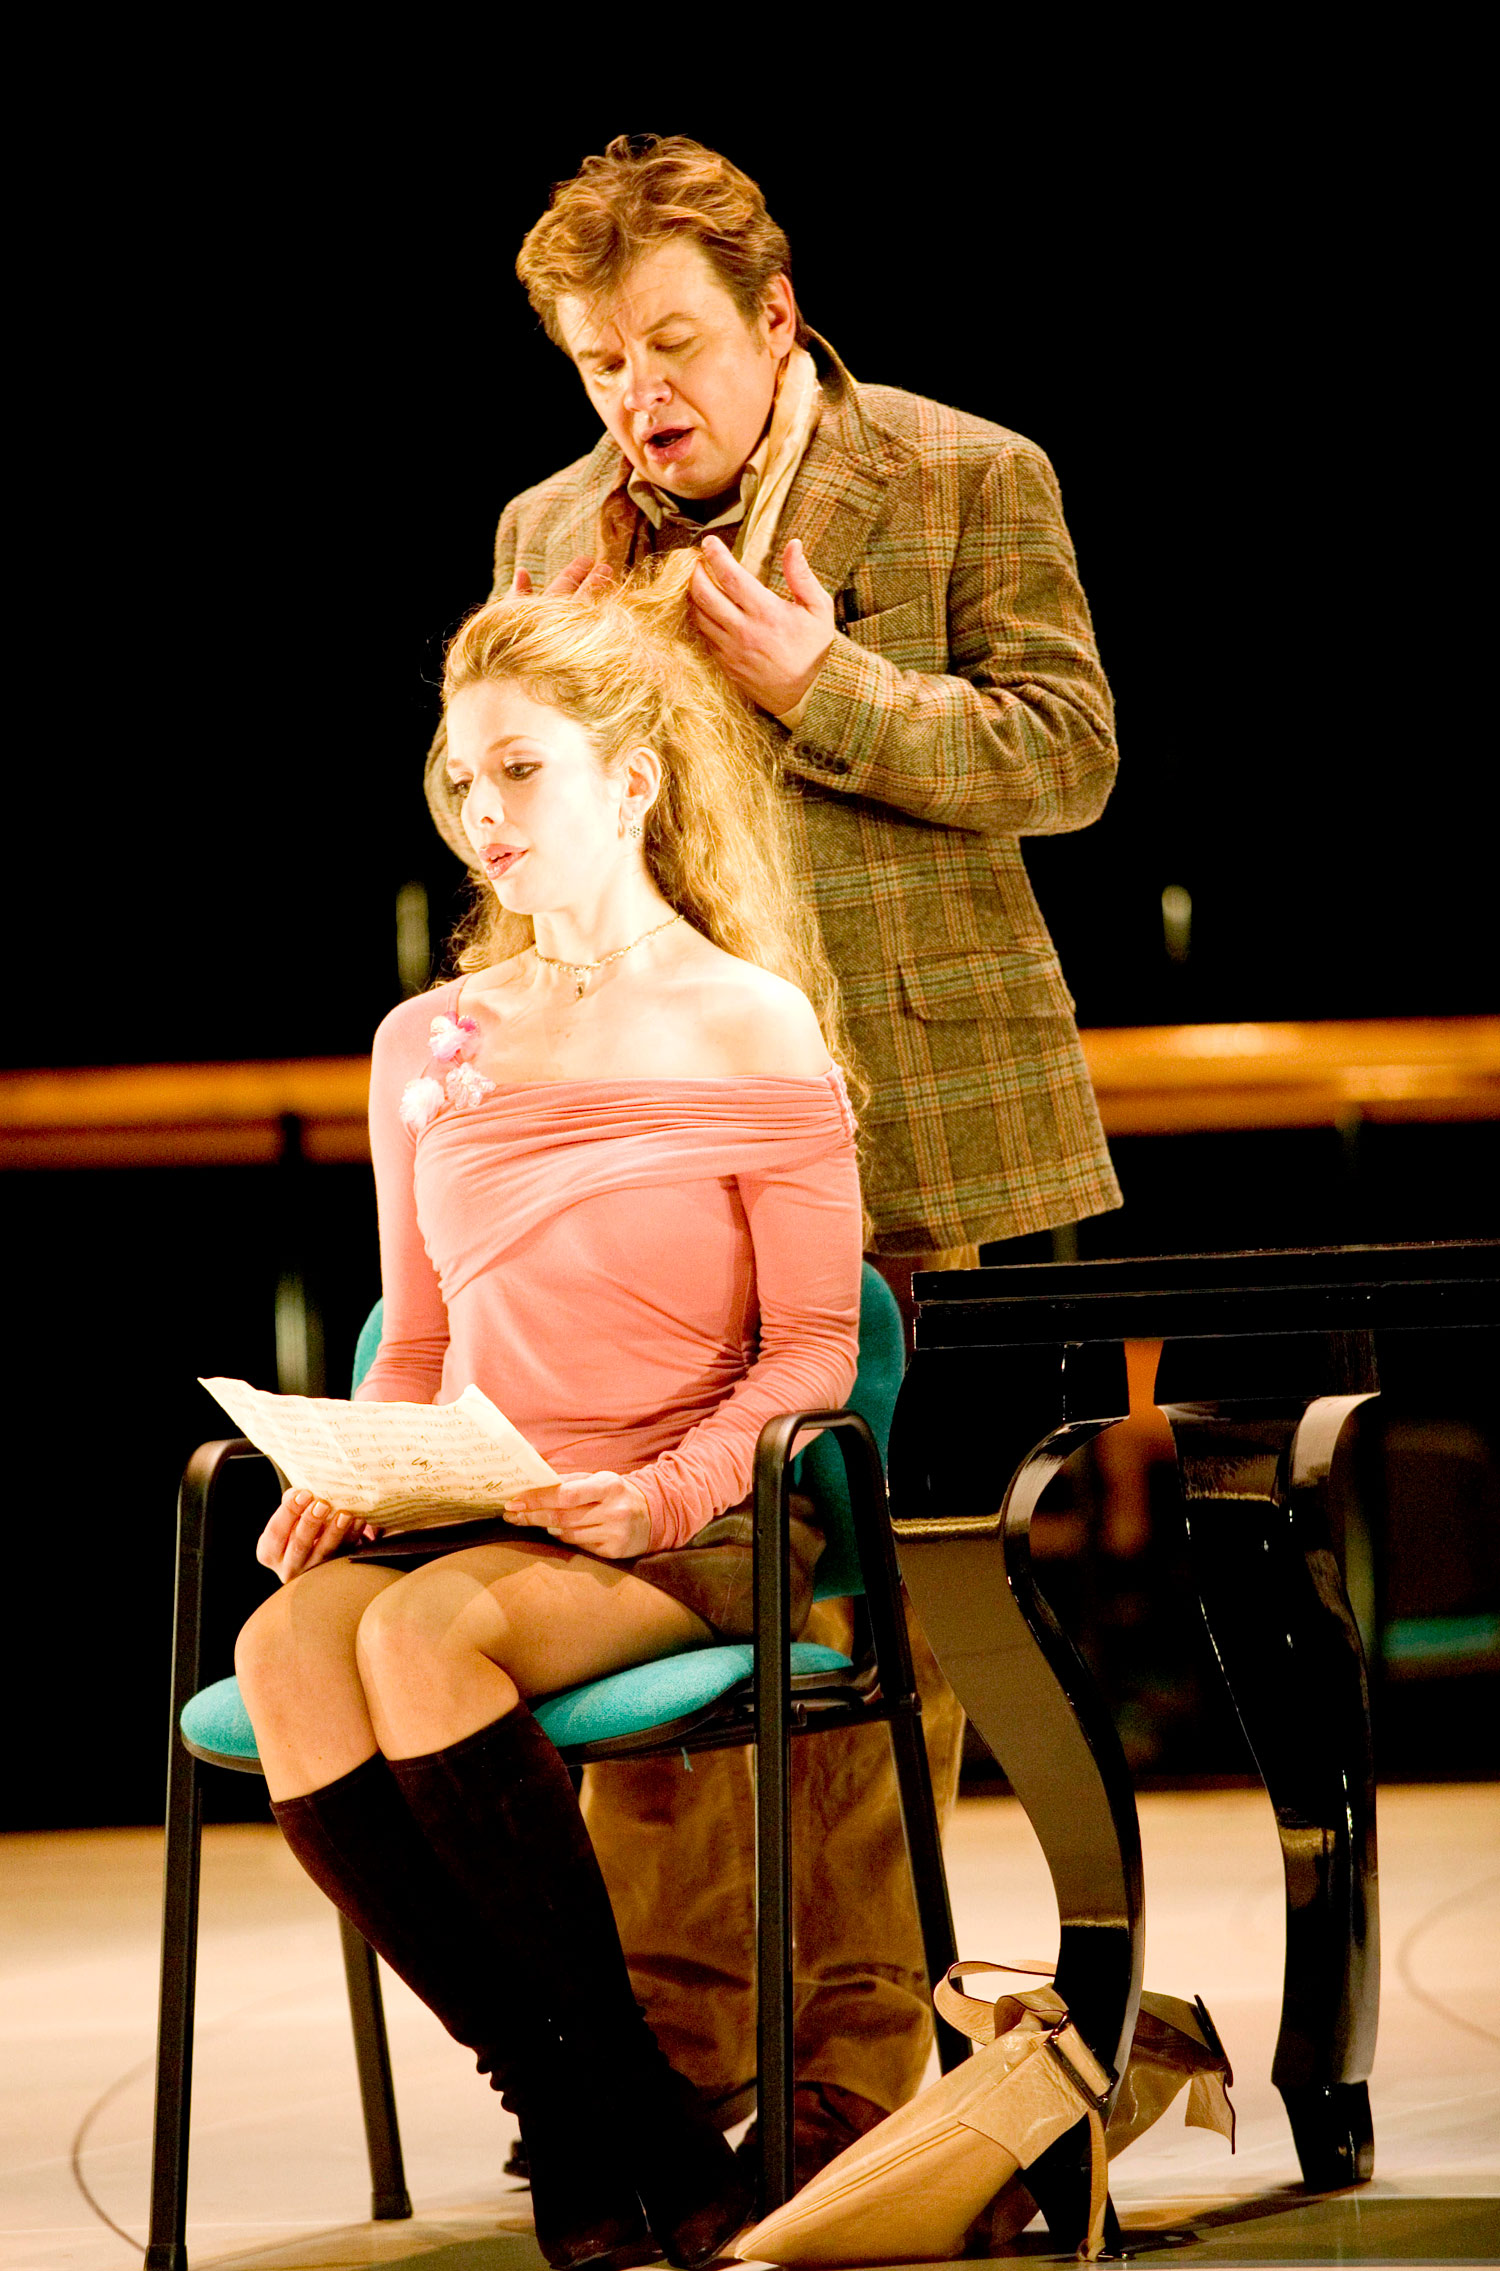 With Henrike Jacob in  L'Opera Seria  at the Nationale Reisopera. © Hermann and Clärchen Baus